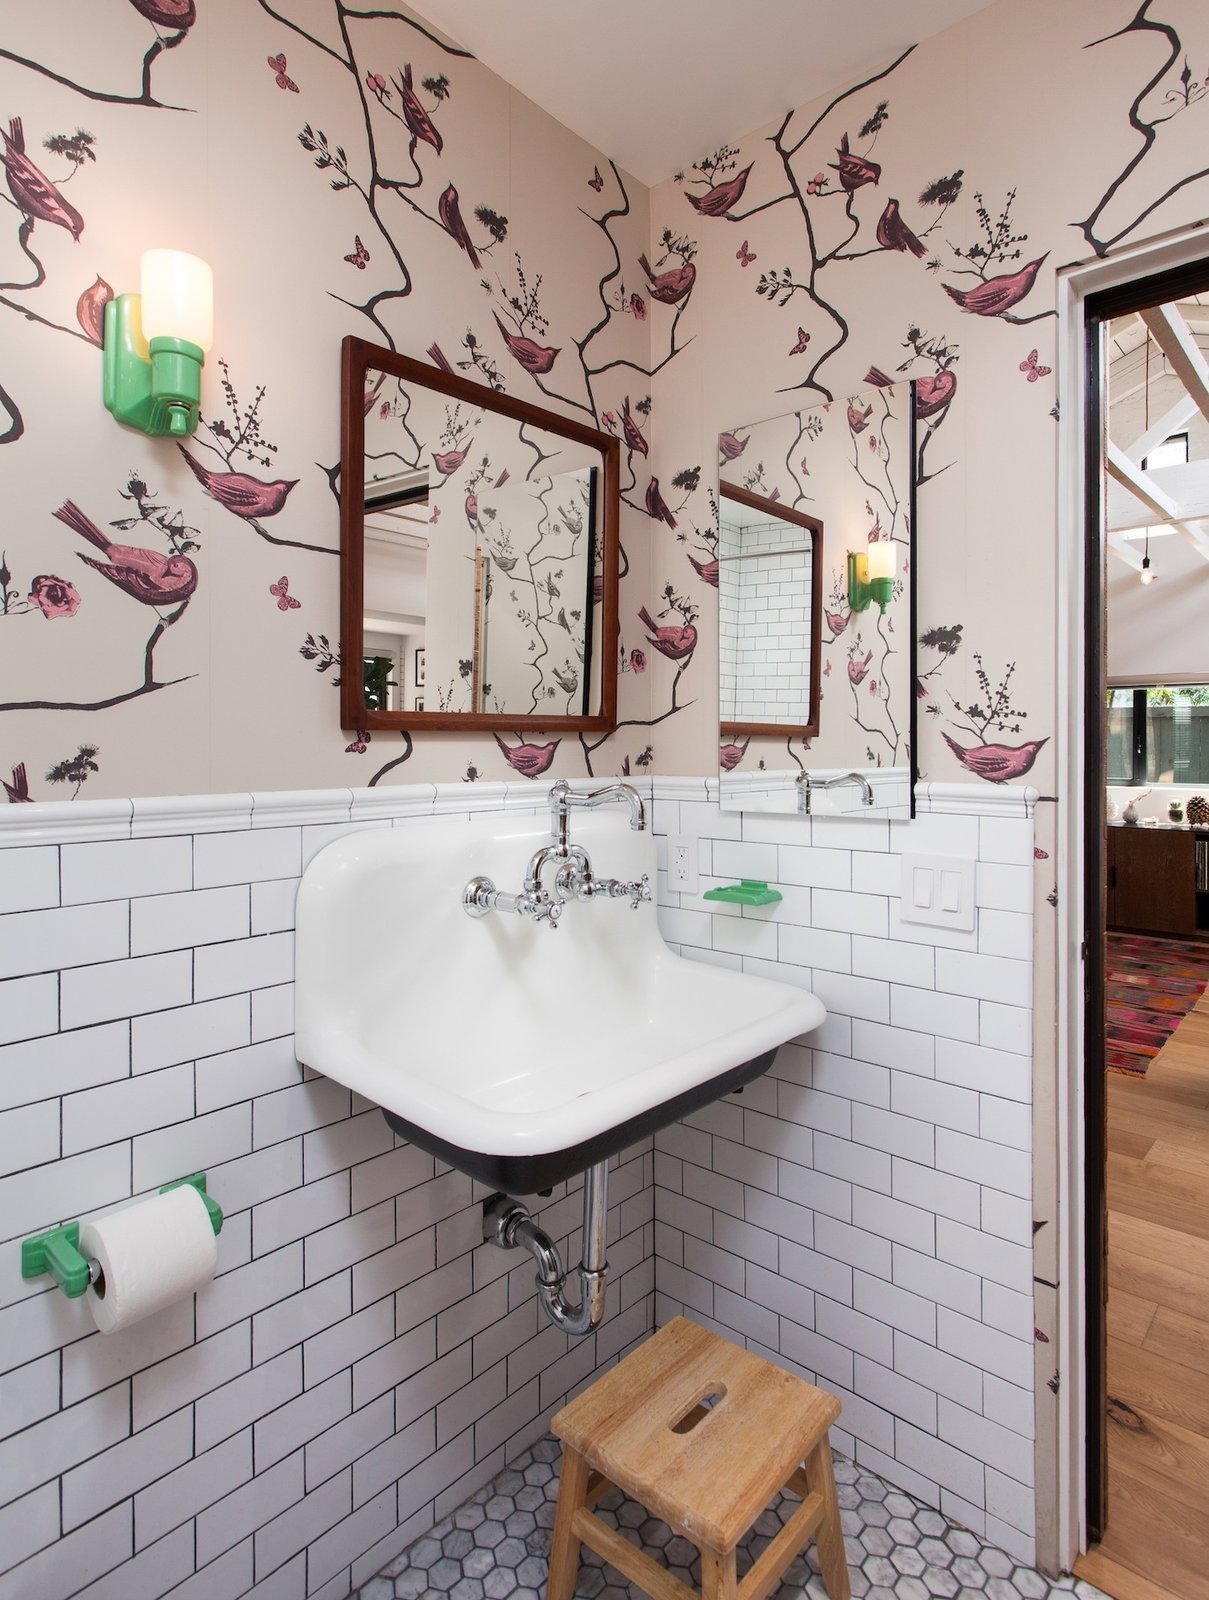 Kid's Bathroom with playful wallpaper, subway tile and colorful bathroom accessories Tagged: Marble Floor, Wall Mount Sink, Subway Tile Wall, and Bath Room.  Ashland Residence by Hsu McCullough